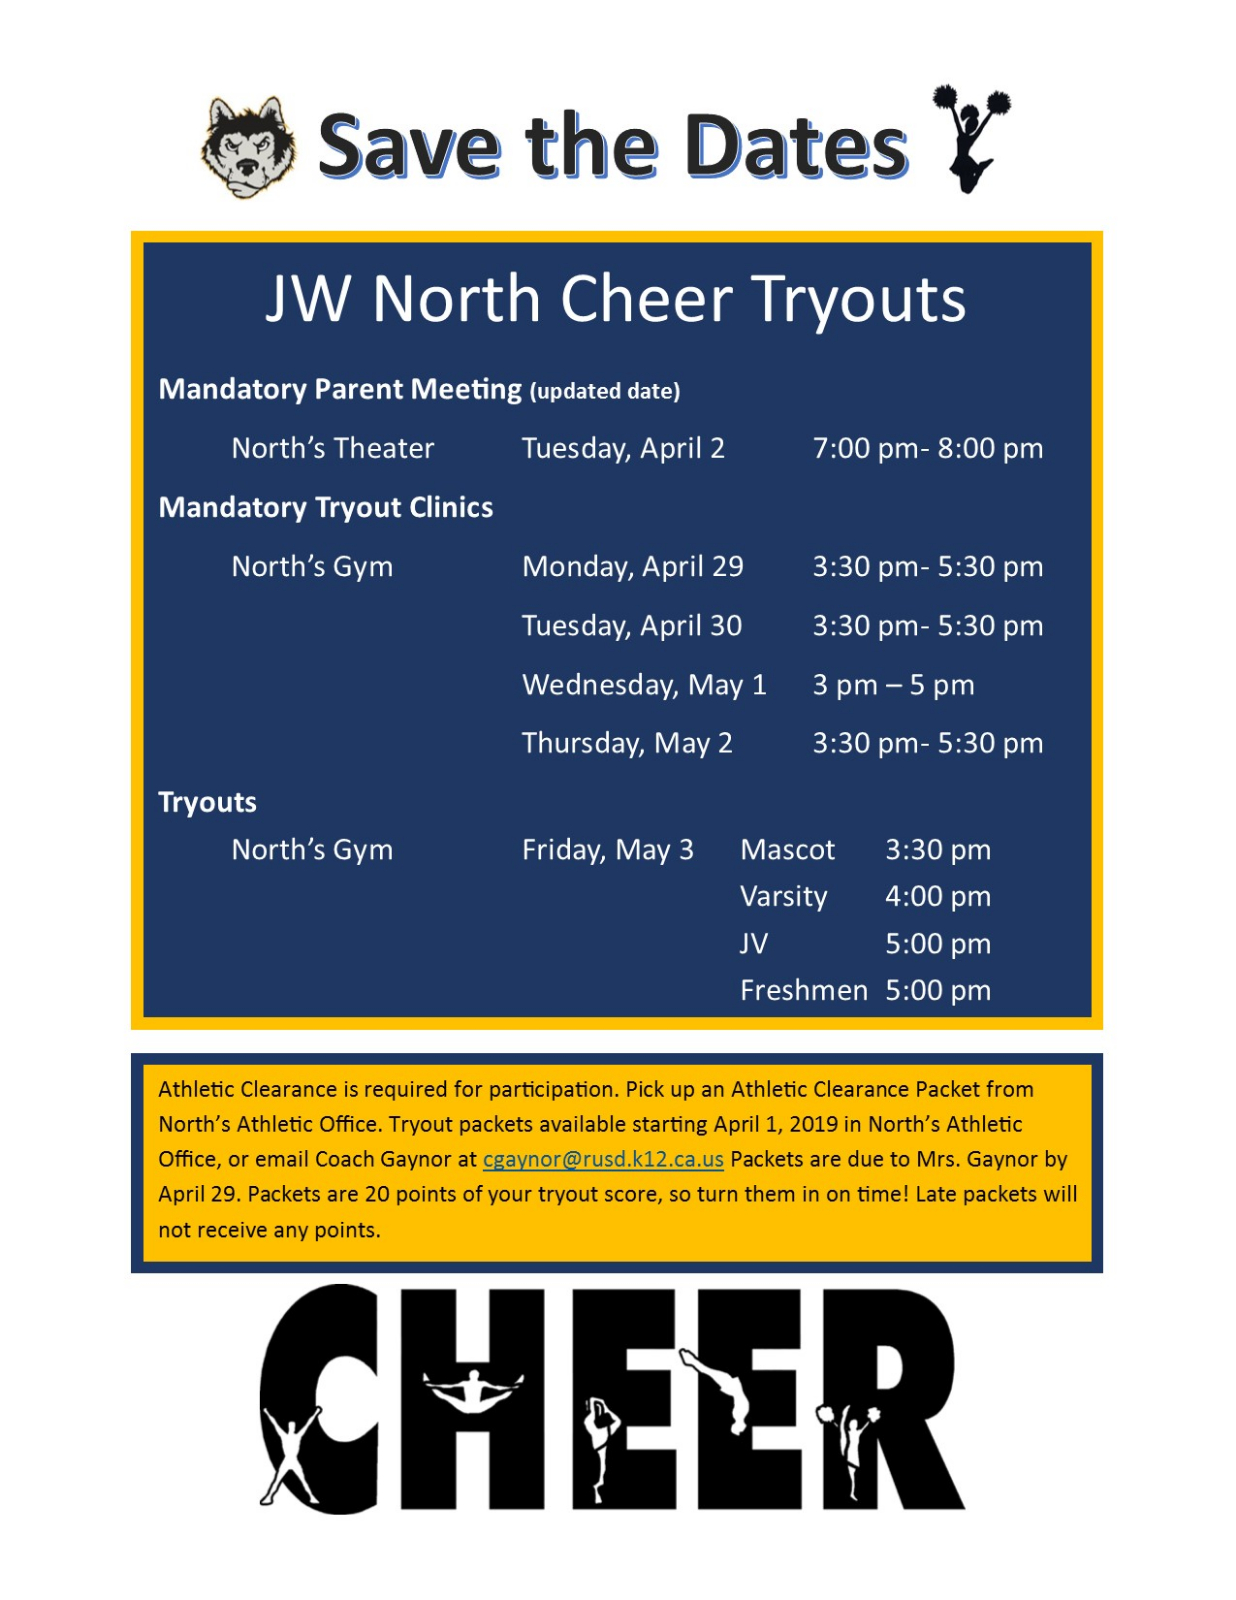 JW North Cheer Tryouts